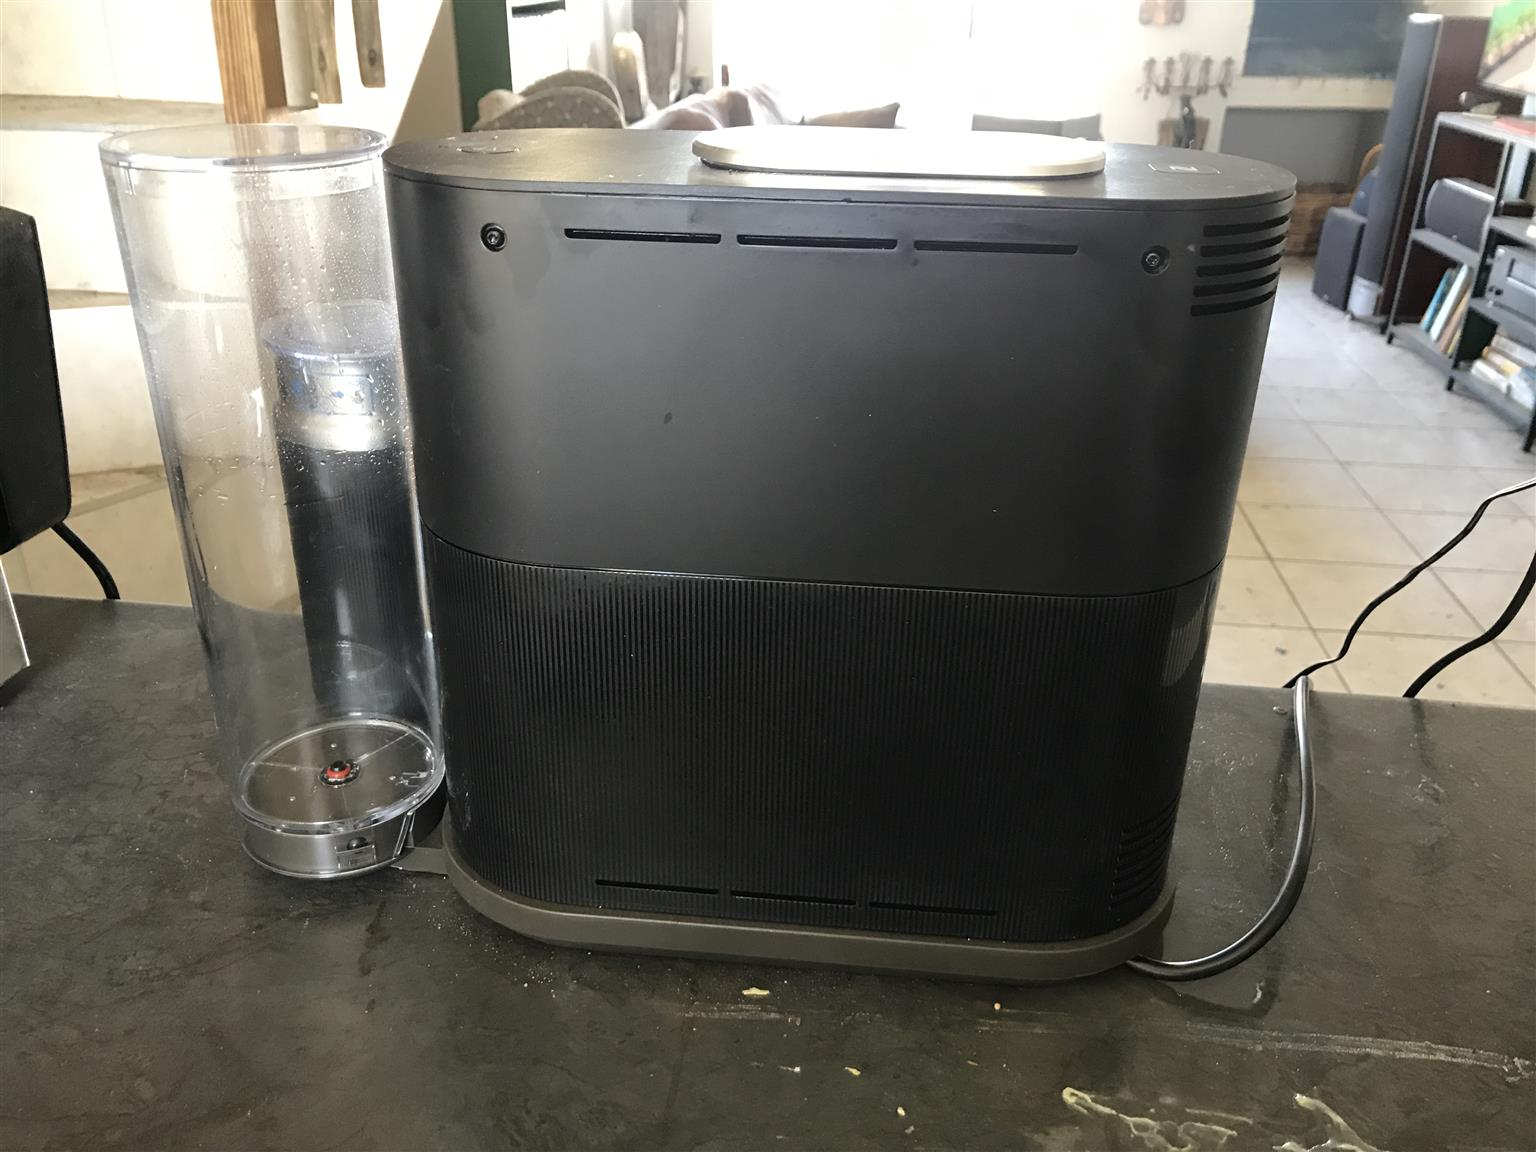 Nespresso Coffee machine for sale